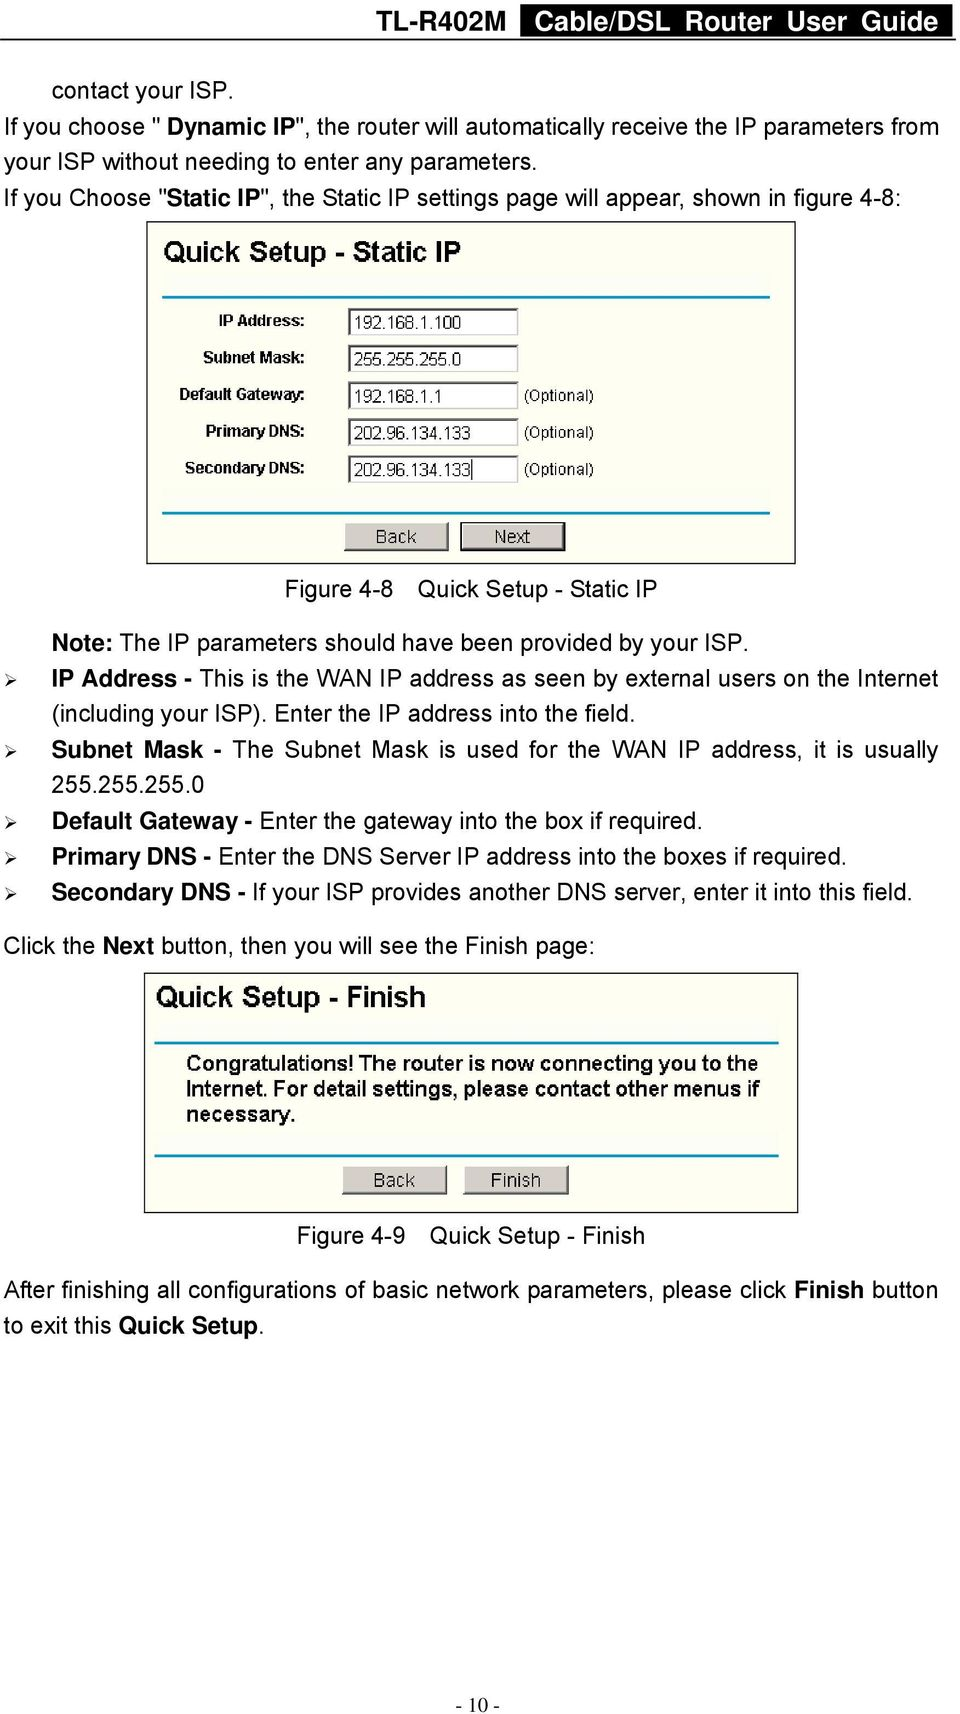 IP Address - This is the WAN IP address as seen by external users on the Internet (including your ISP). Enter the IP address into the field.